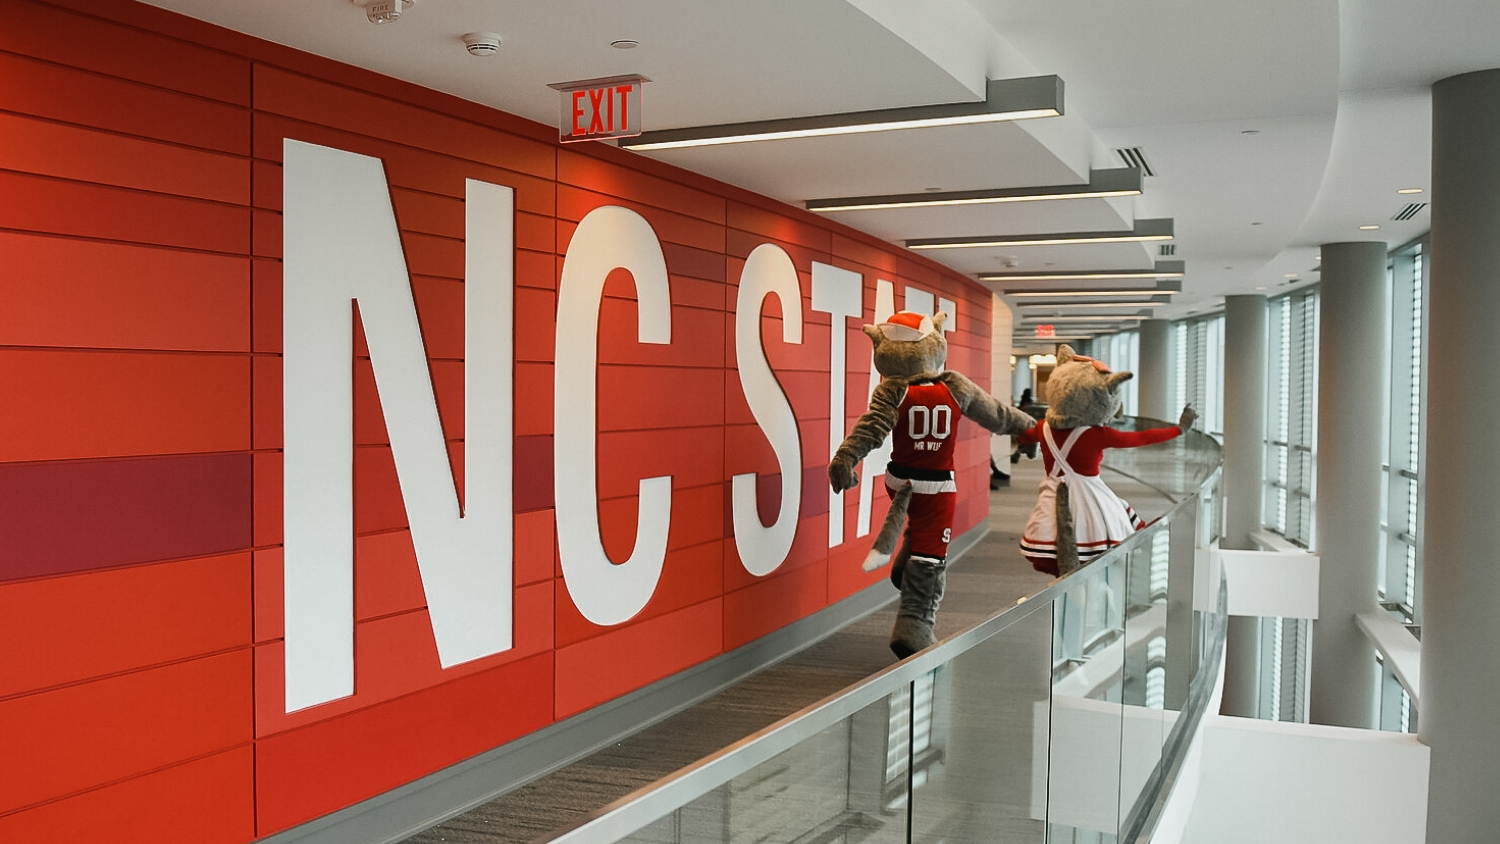 Mr. Wuf and Ms. Wuf take a walk by the red NC State wall in Talley Student Union.